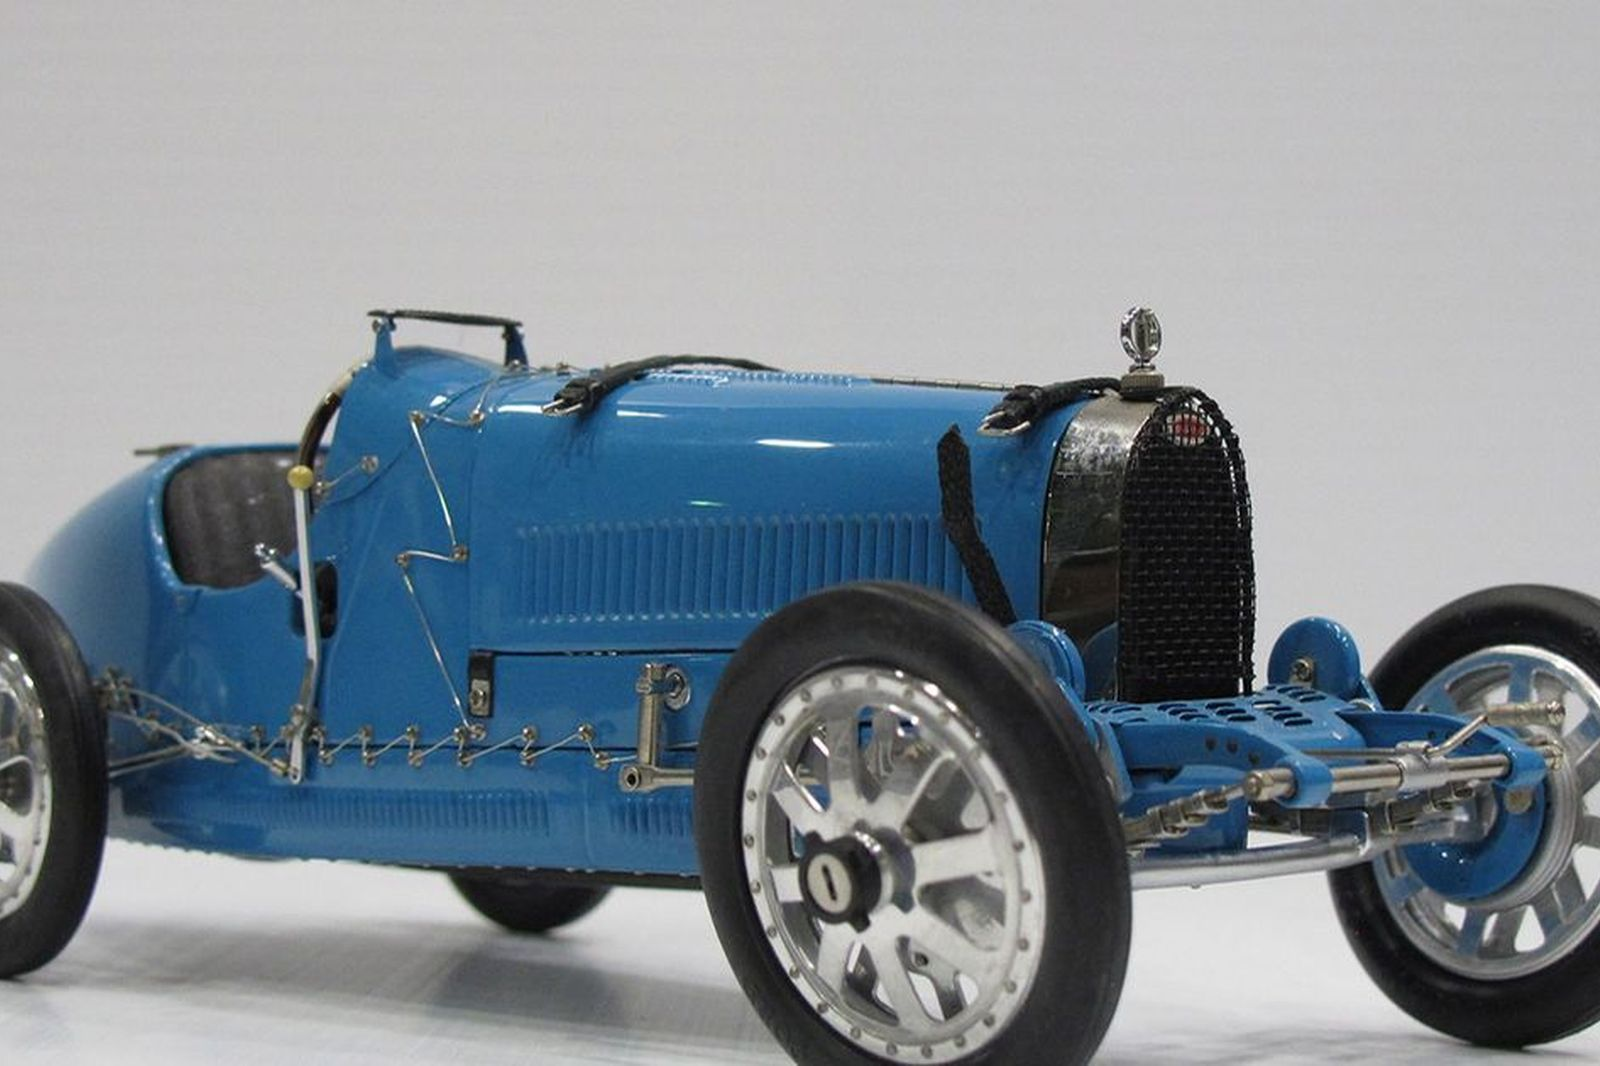 sold model car 1 x bugatti typ 35 grand prix 1924 1 18 scale by cmc auctions lot v shannons. Black Bedroom Furniture Sets. Home Design Ideas